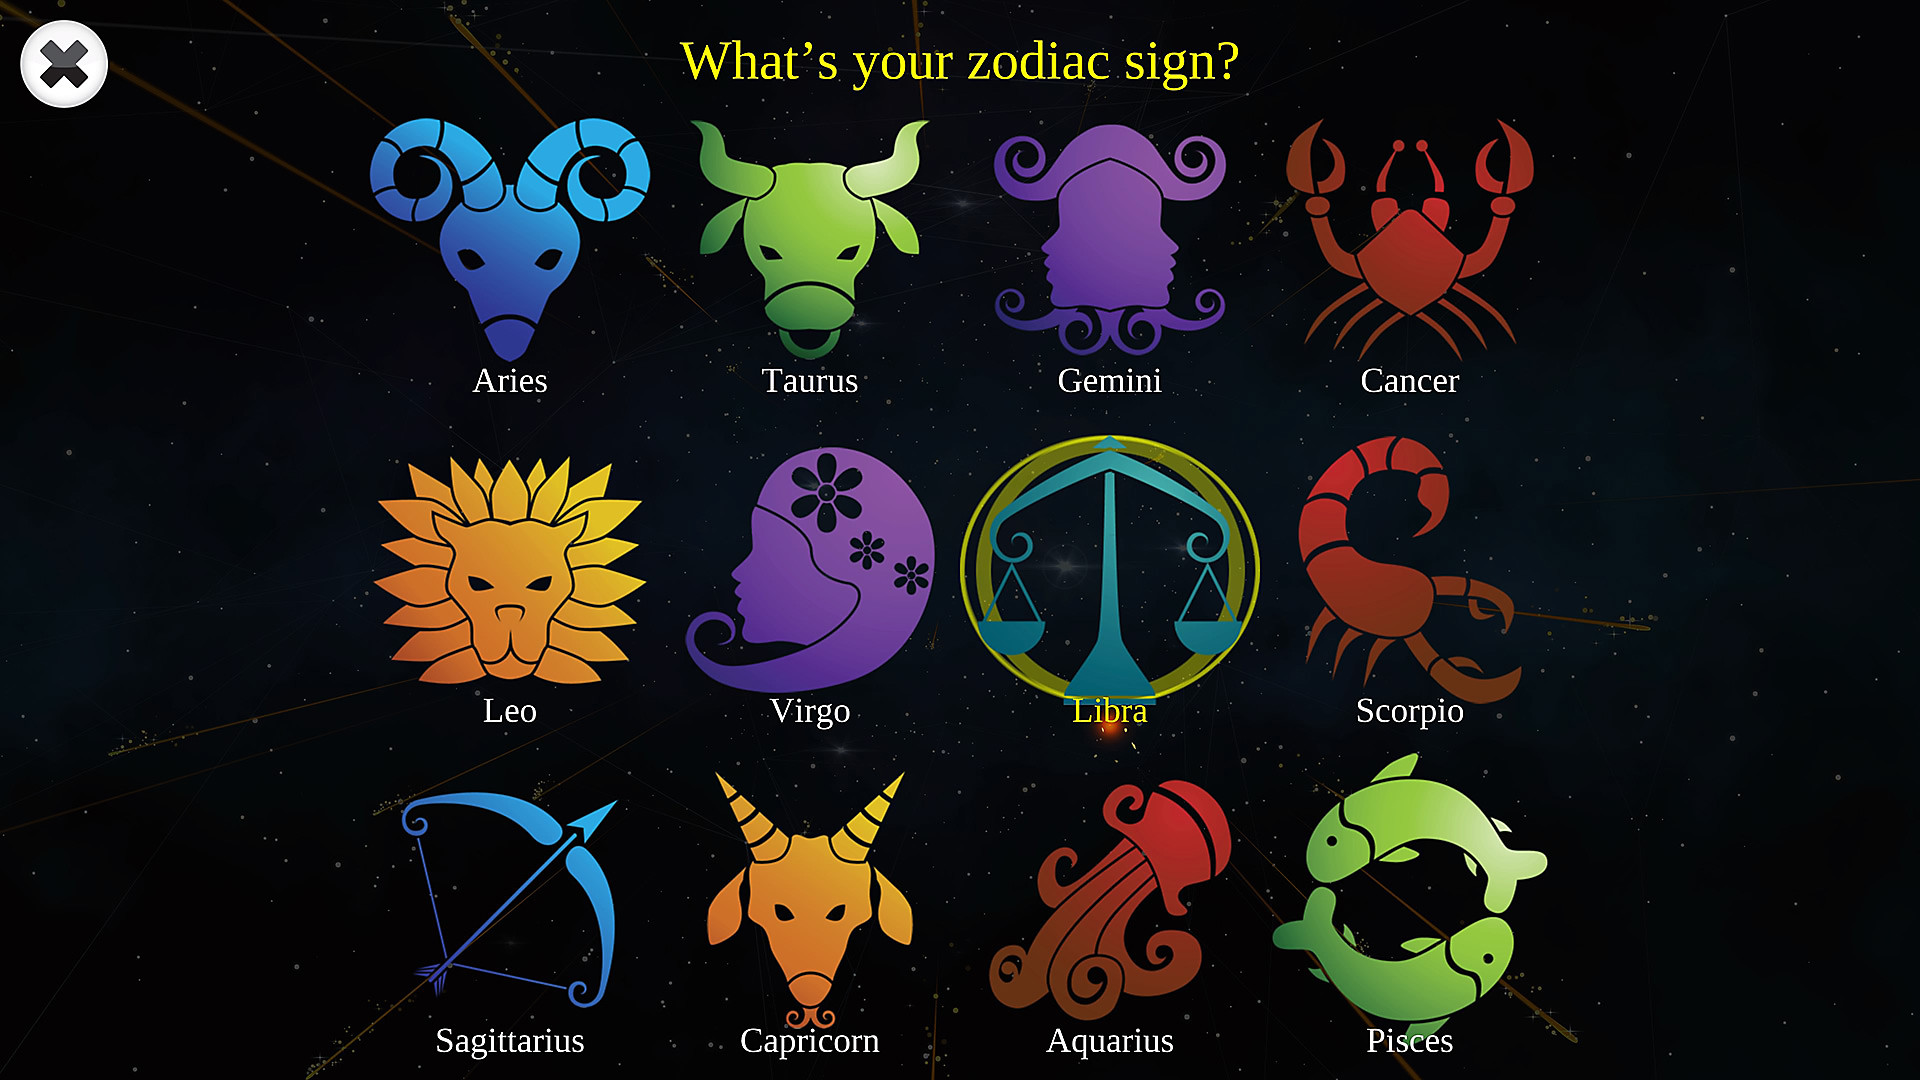 Choose your zodiac